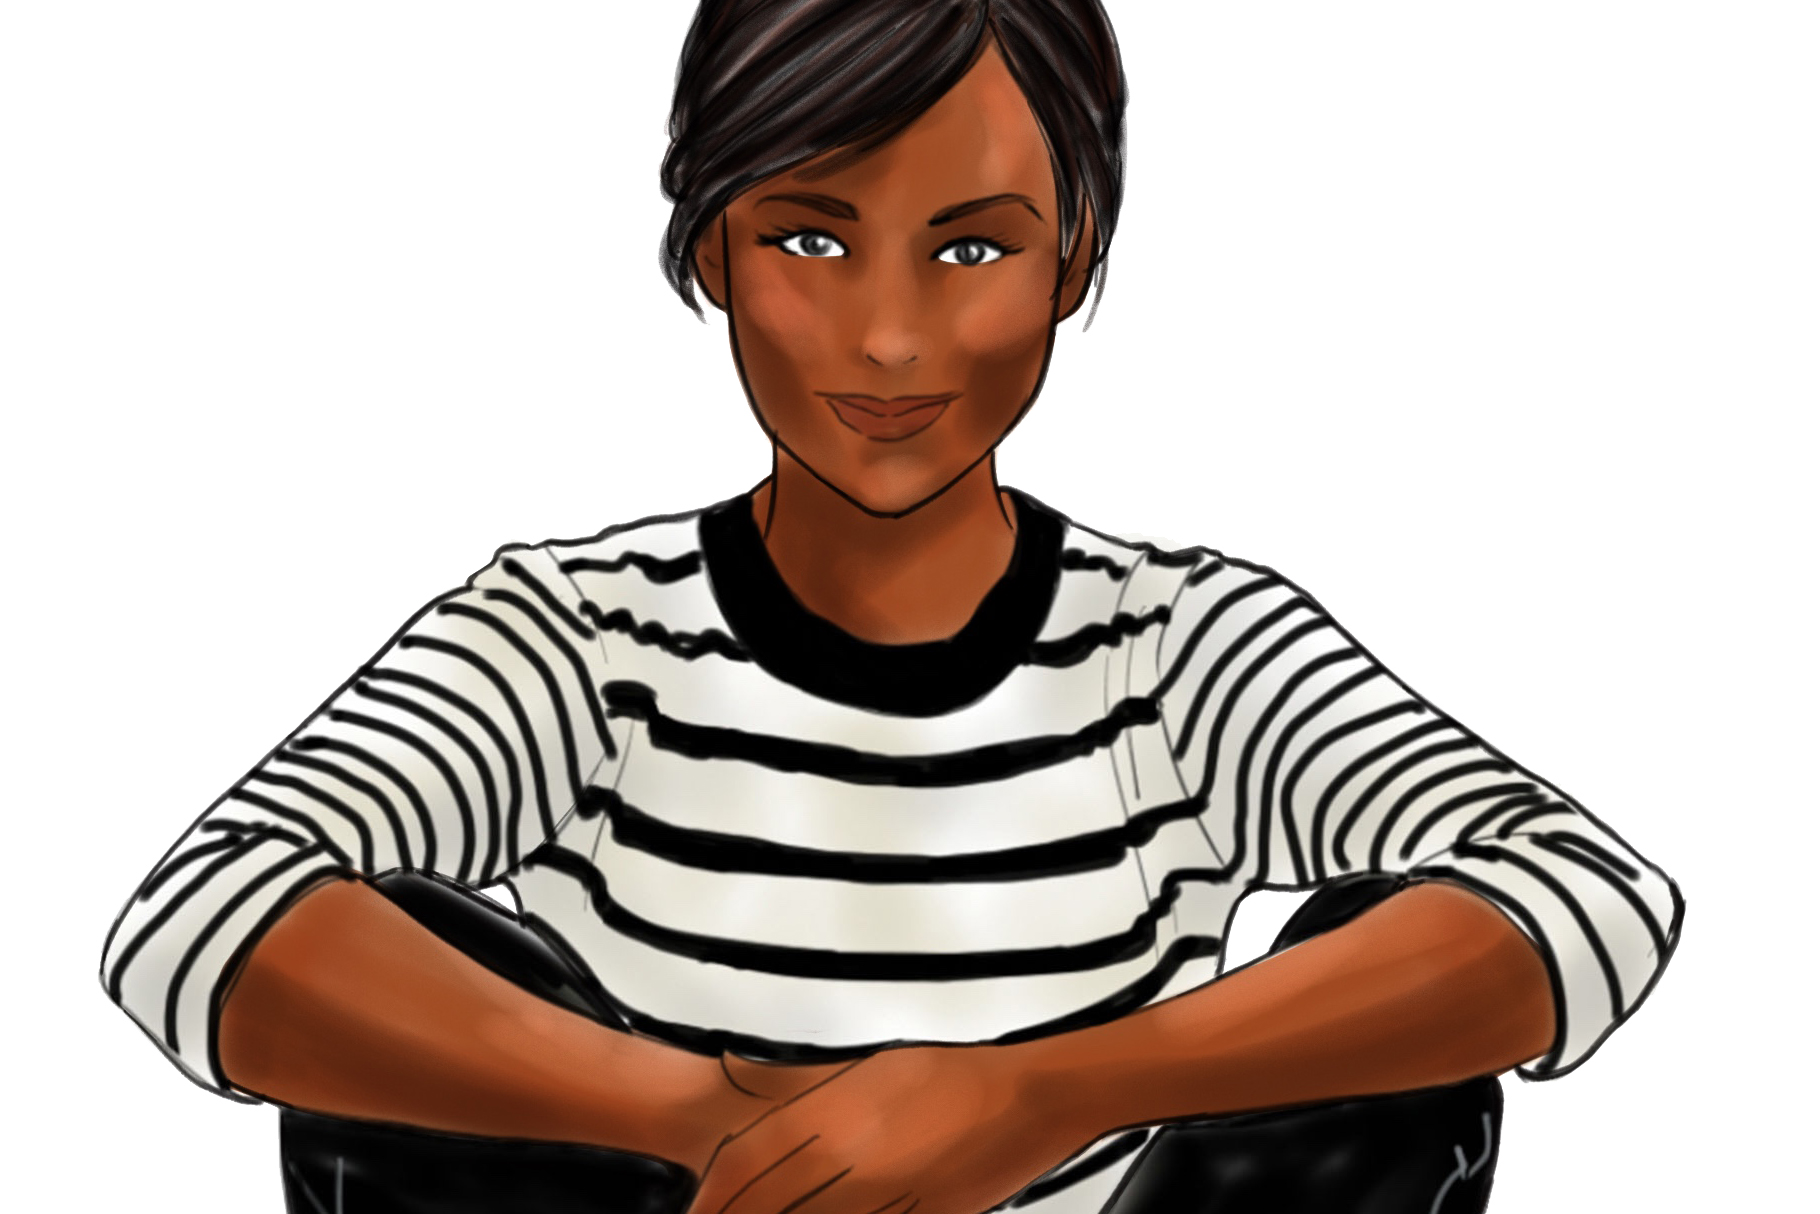 Fashion illustration - Girls in striped T - Dark Skin example image 3